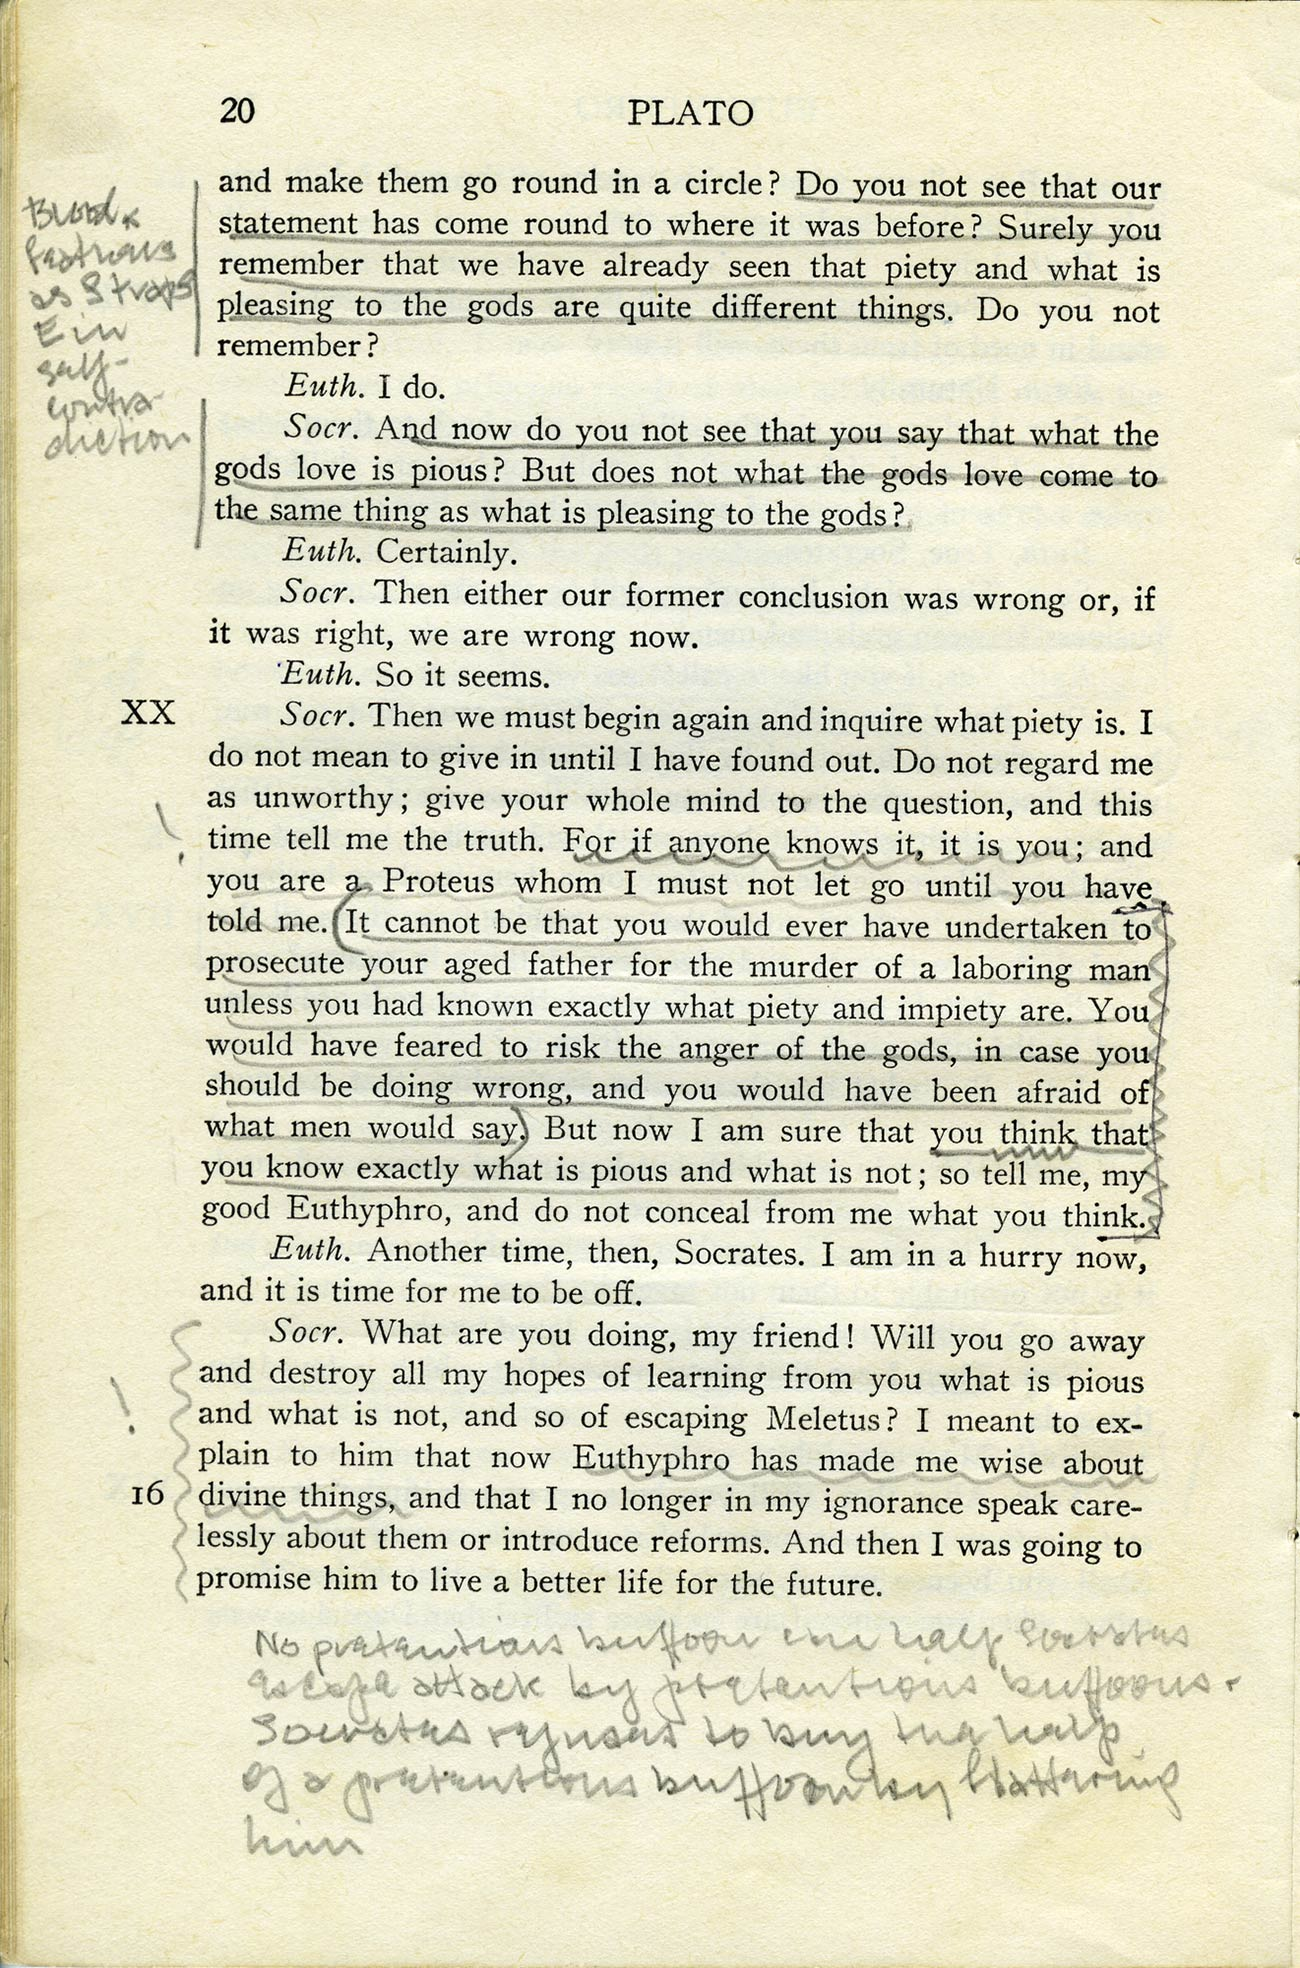 A printed page from a Plato text, with underlining and marginal notes made in pencil